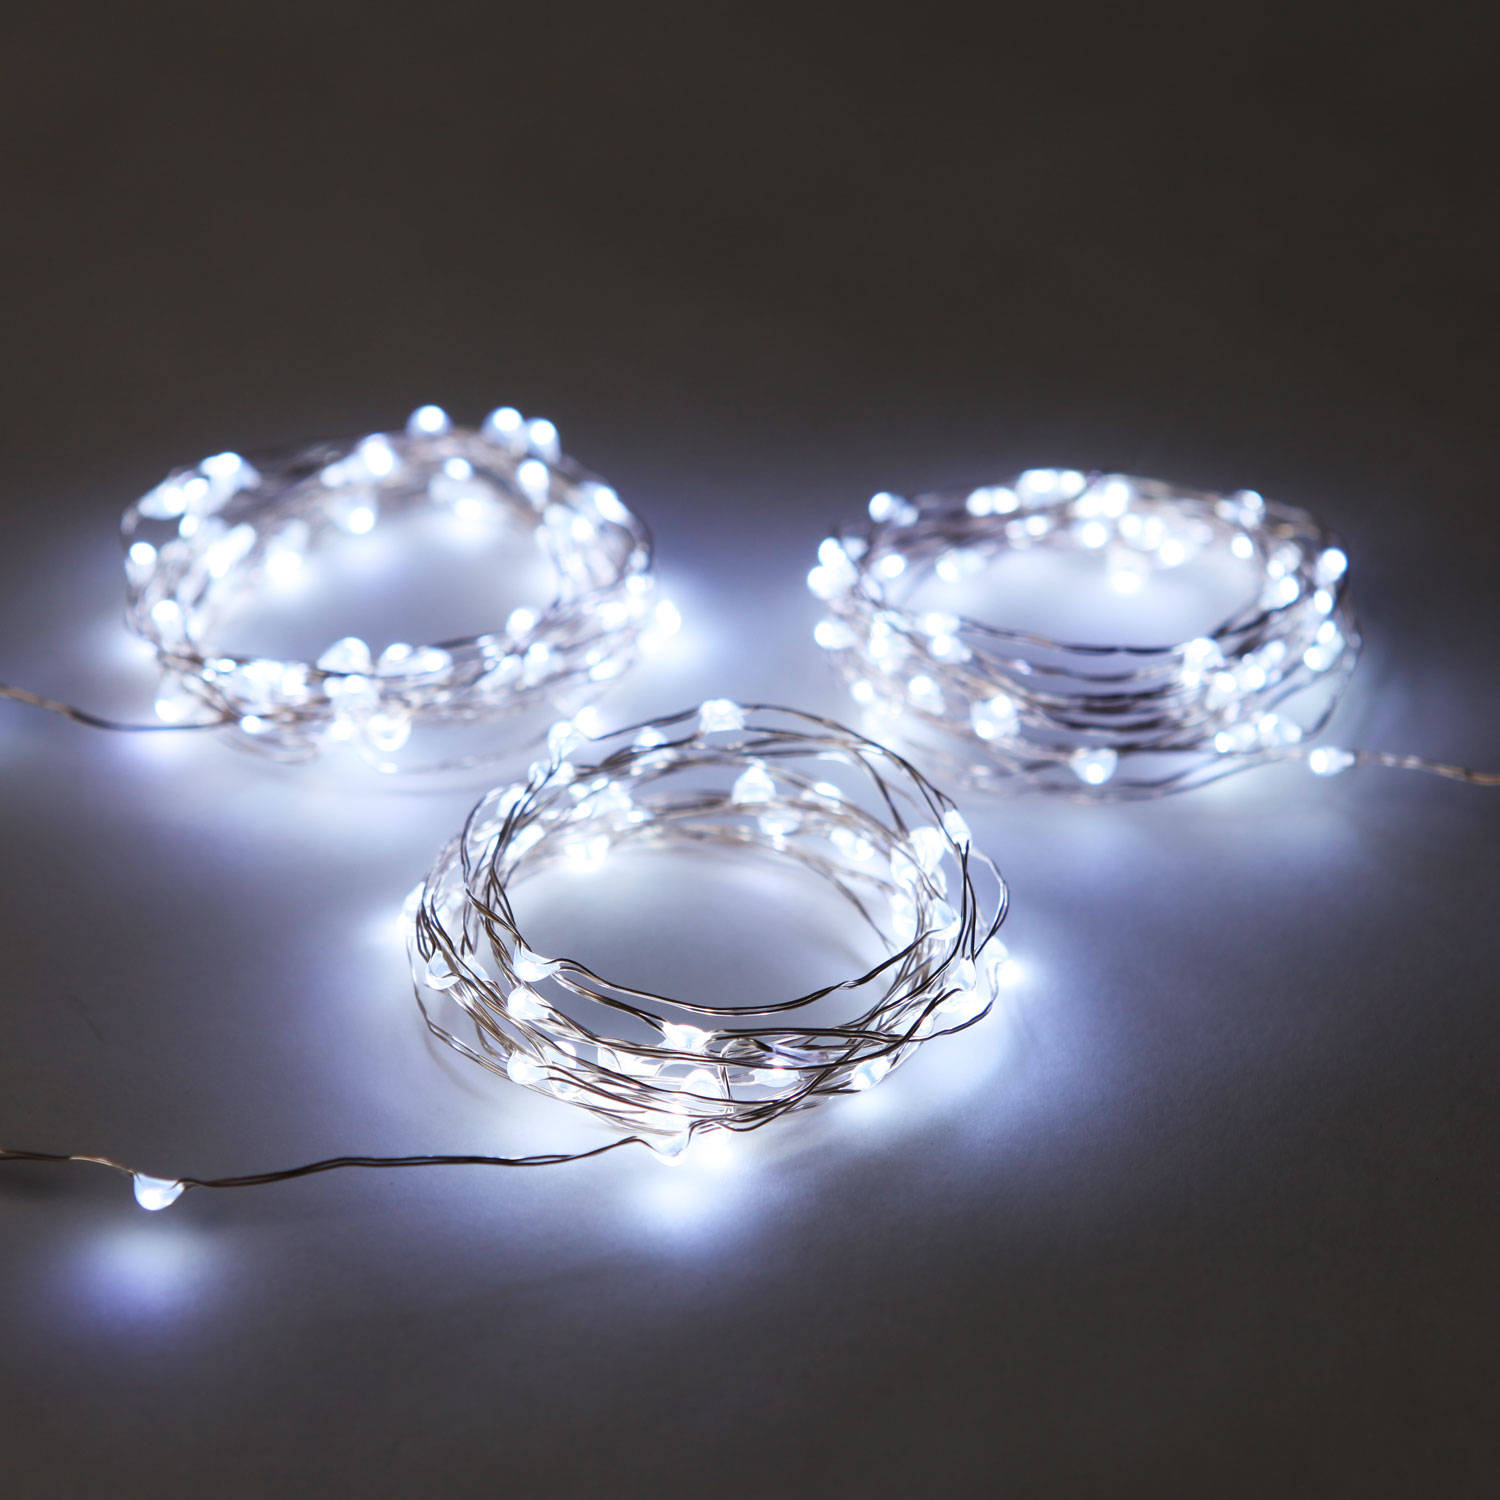 Thin Led String Lights : Cool White 50 LED Silver Wire Battery String Light, Set of 3